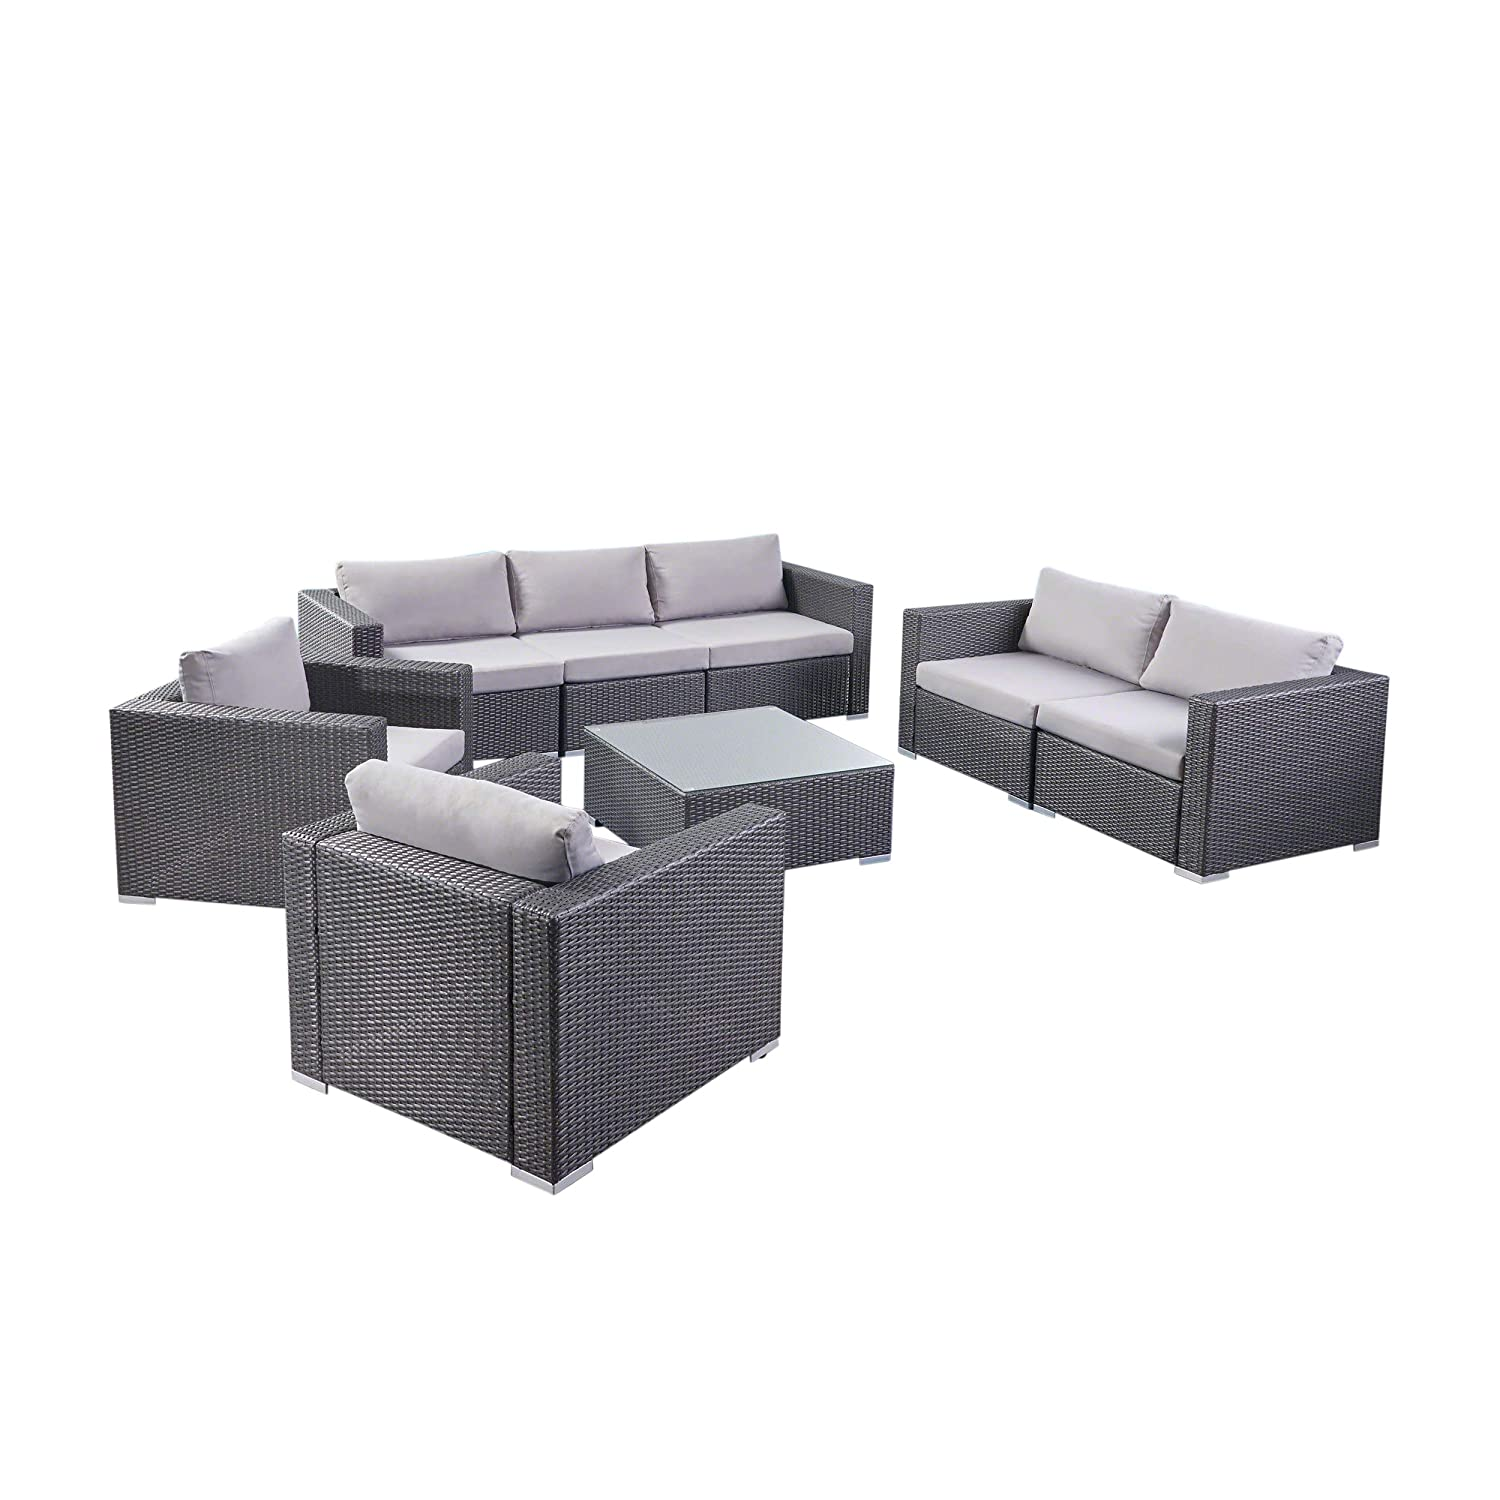 Great Deal Furniture 304333 Samuel Outdoor 8-Piece Wicker/Aluminum Sofa Chat Set with Cushions | in Grey/Silver